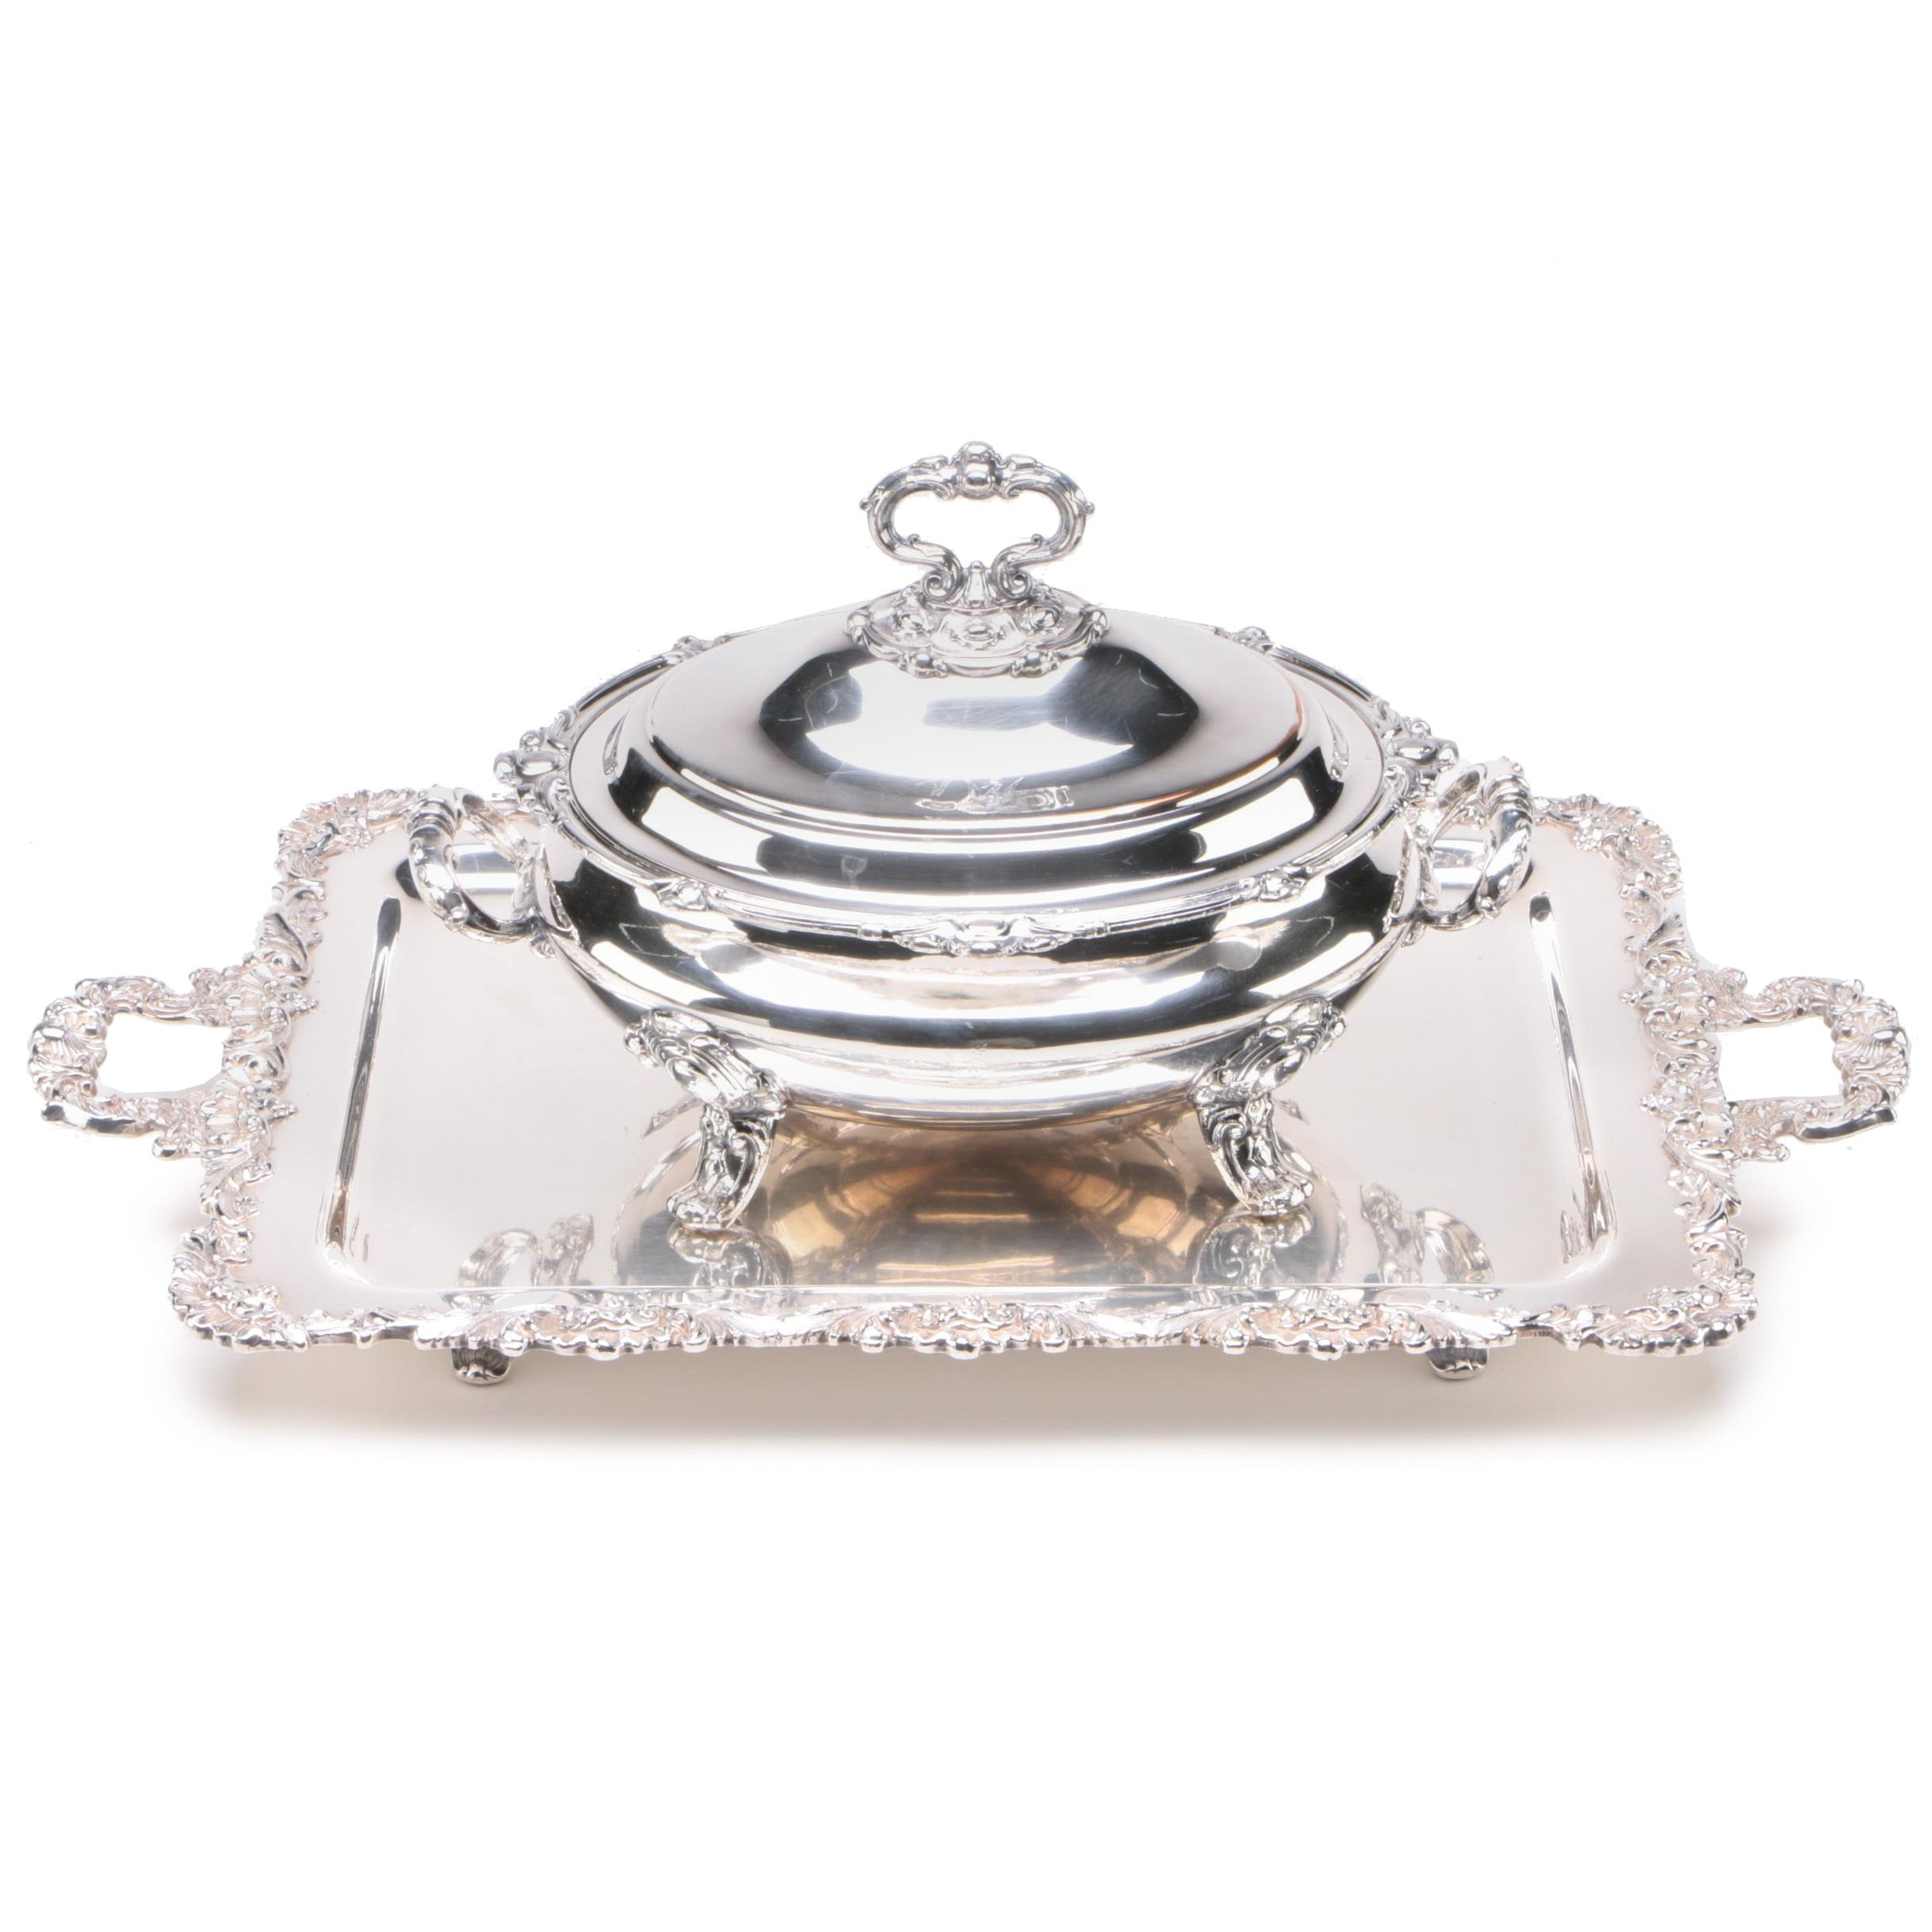 Silver Plate Tureen and Large Service Tray